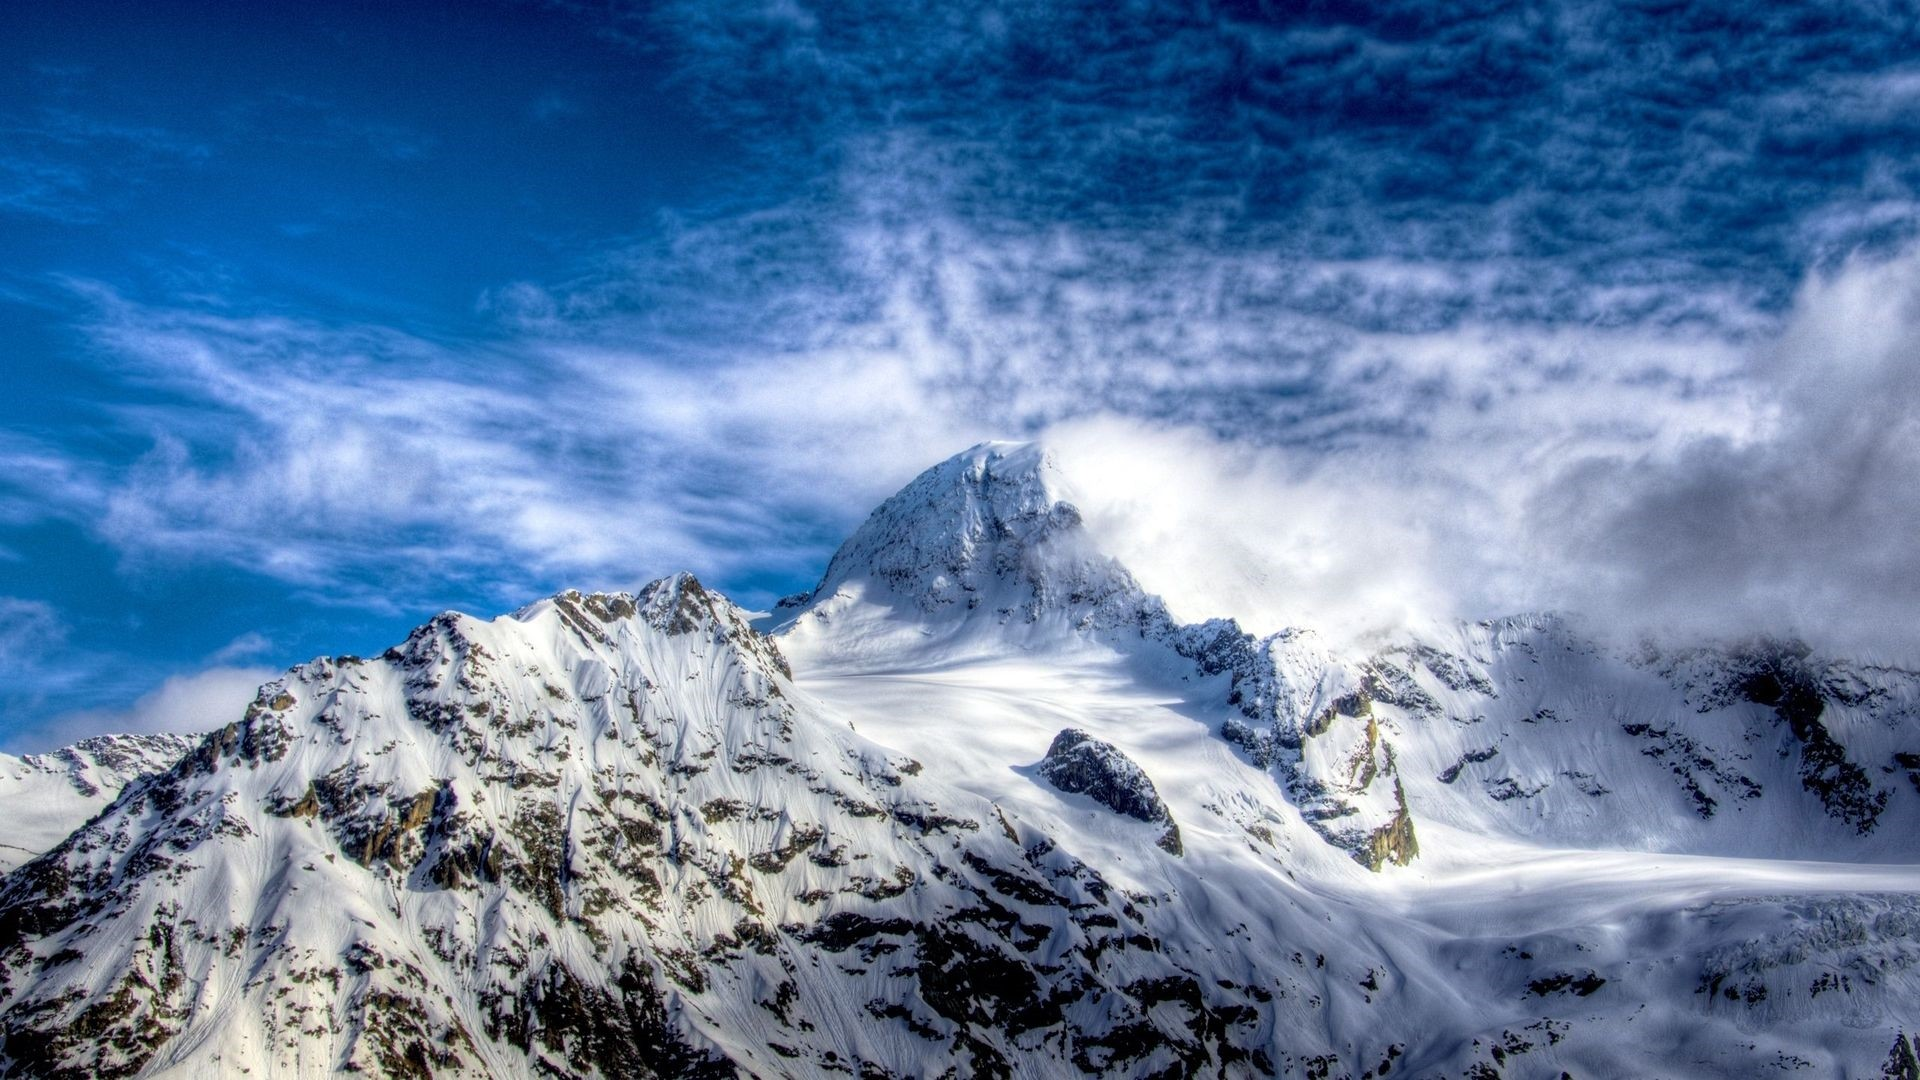 Snow Mountain Wallpaper Picture hd